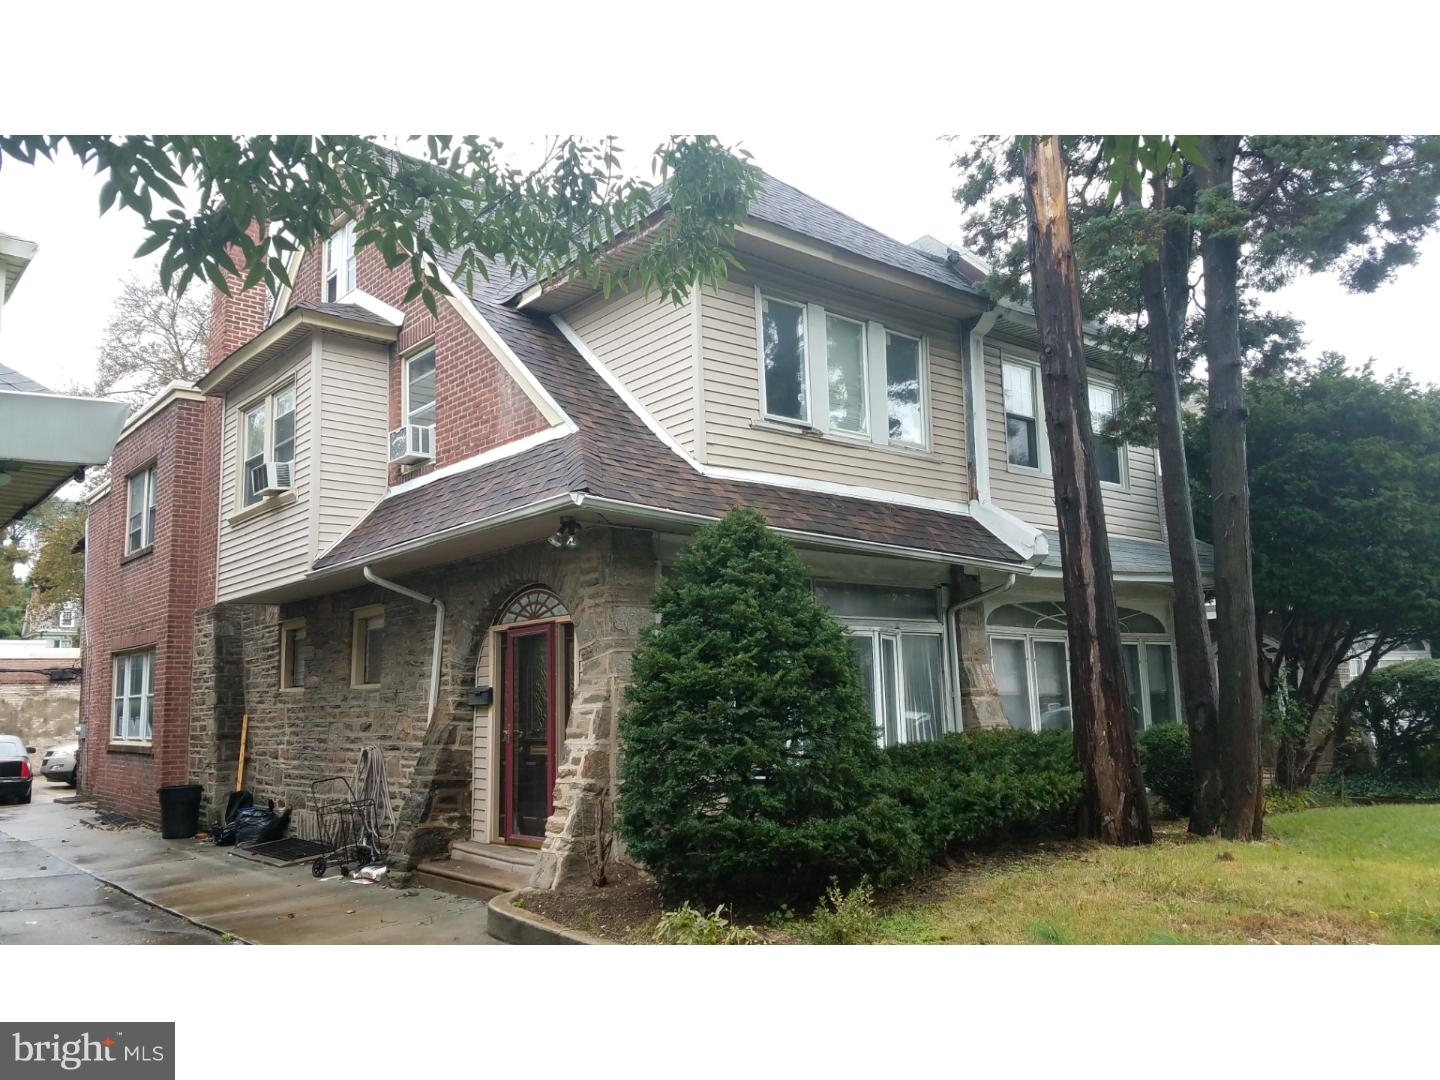 1011 66TH AVENUE, Philadelphia, 19126 - SOLD LISTING, MLS # PAPH103098 |  RE/MAX of Reading